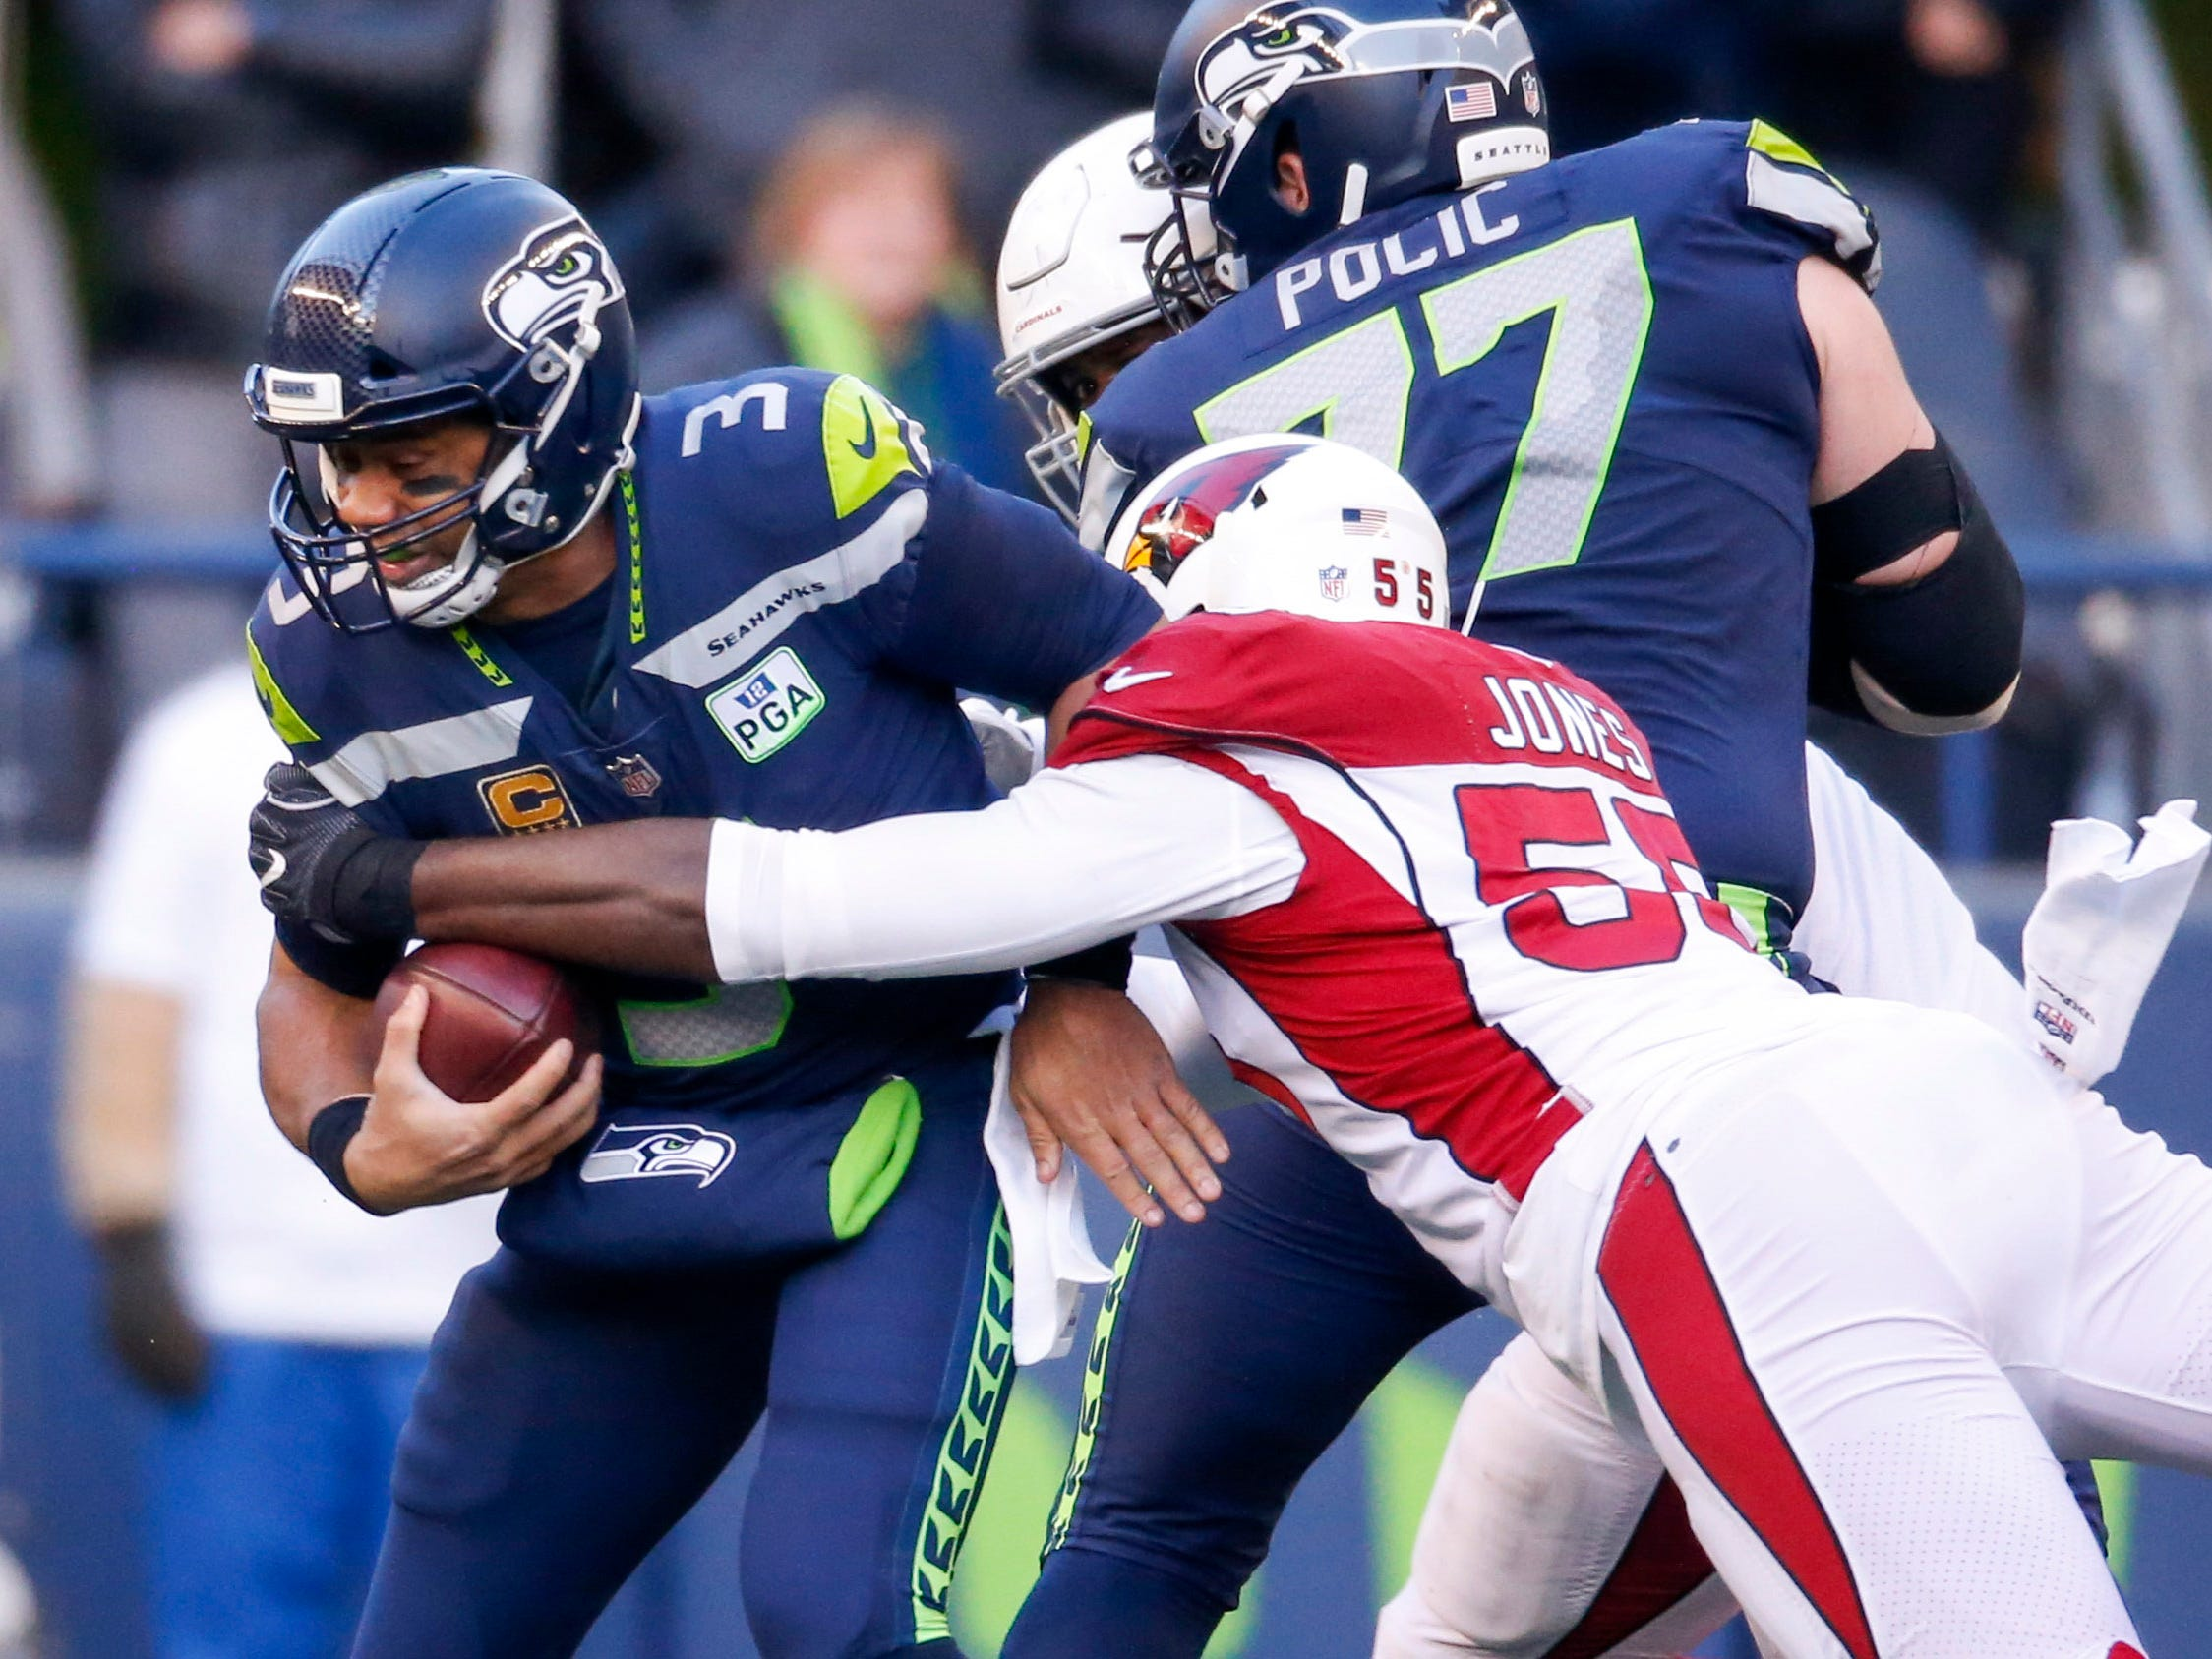 Dec 30, 2018; Seattle, WA, USA; Arizona Cardinals defensive end Chandler Jones (55) sacks Seattle Seahawks quarterback Russell Wilson (3) during the second quarter at CenturyLink Field. Mandatory Credit: Joe Nicholson-USA TODAY Sports